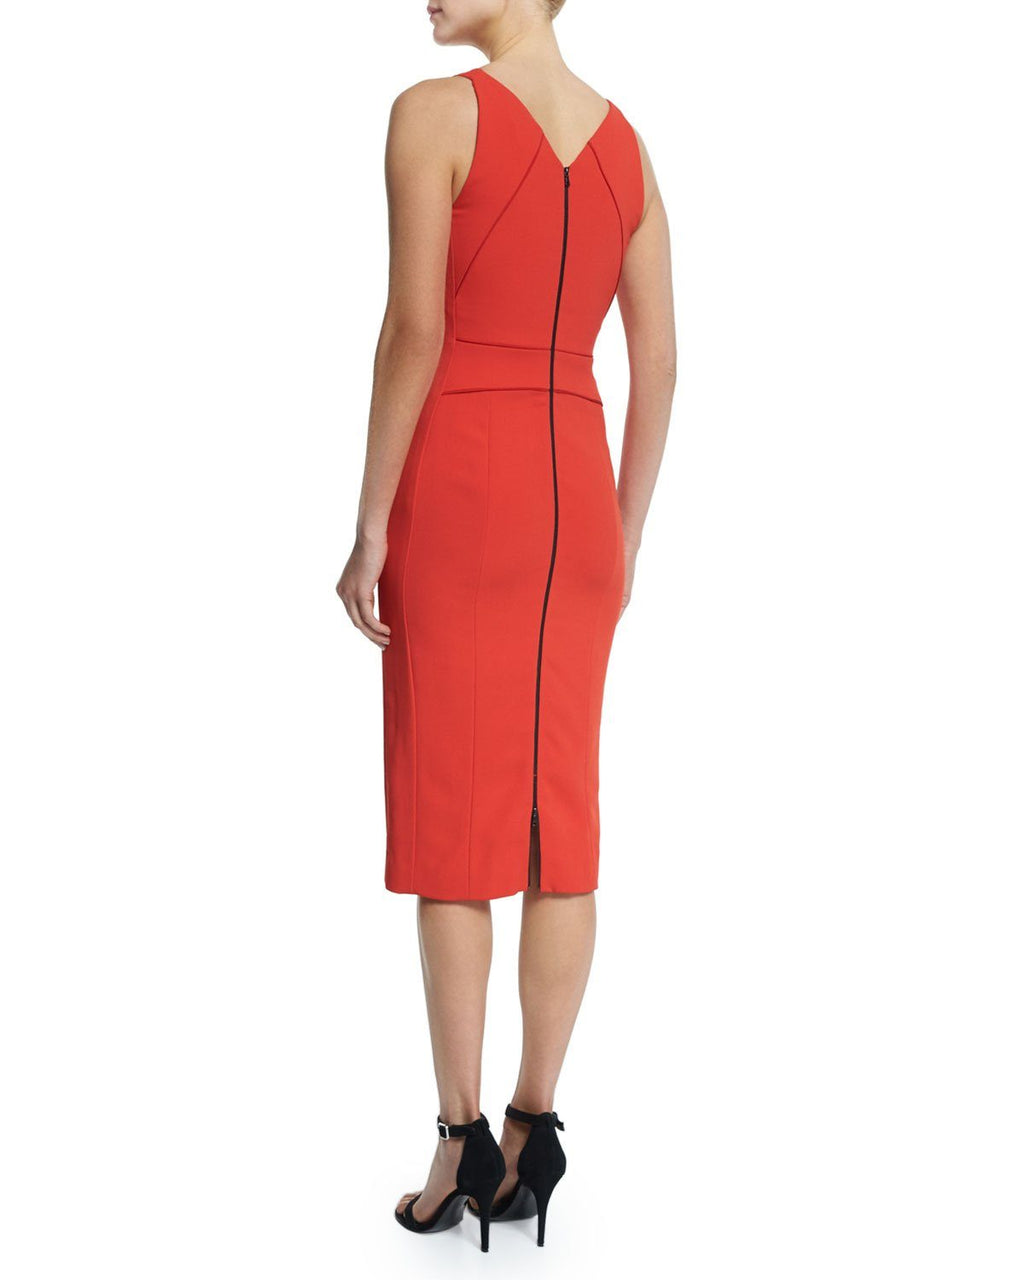 Narciso Rodriquez Sleeveless V-Neck Sheath Dress, Red